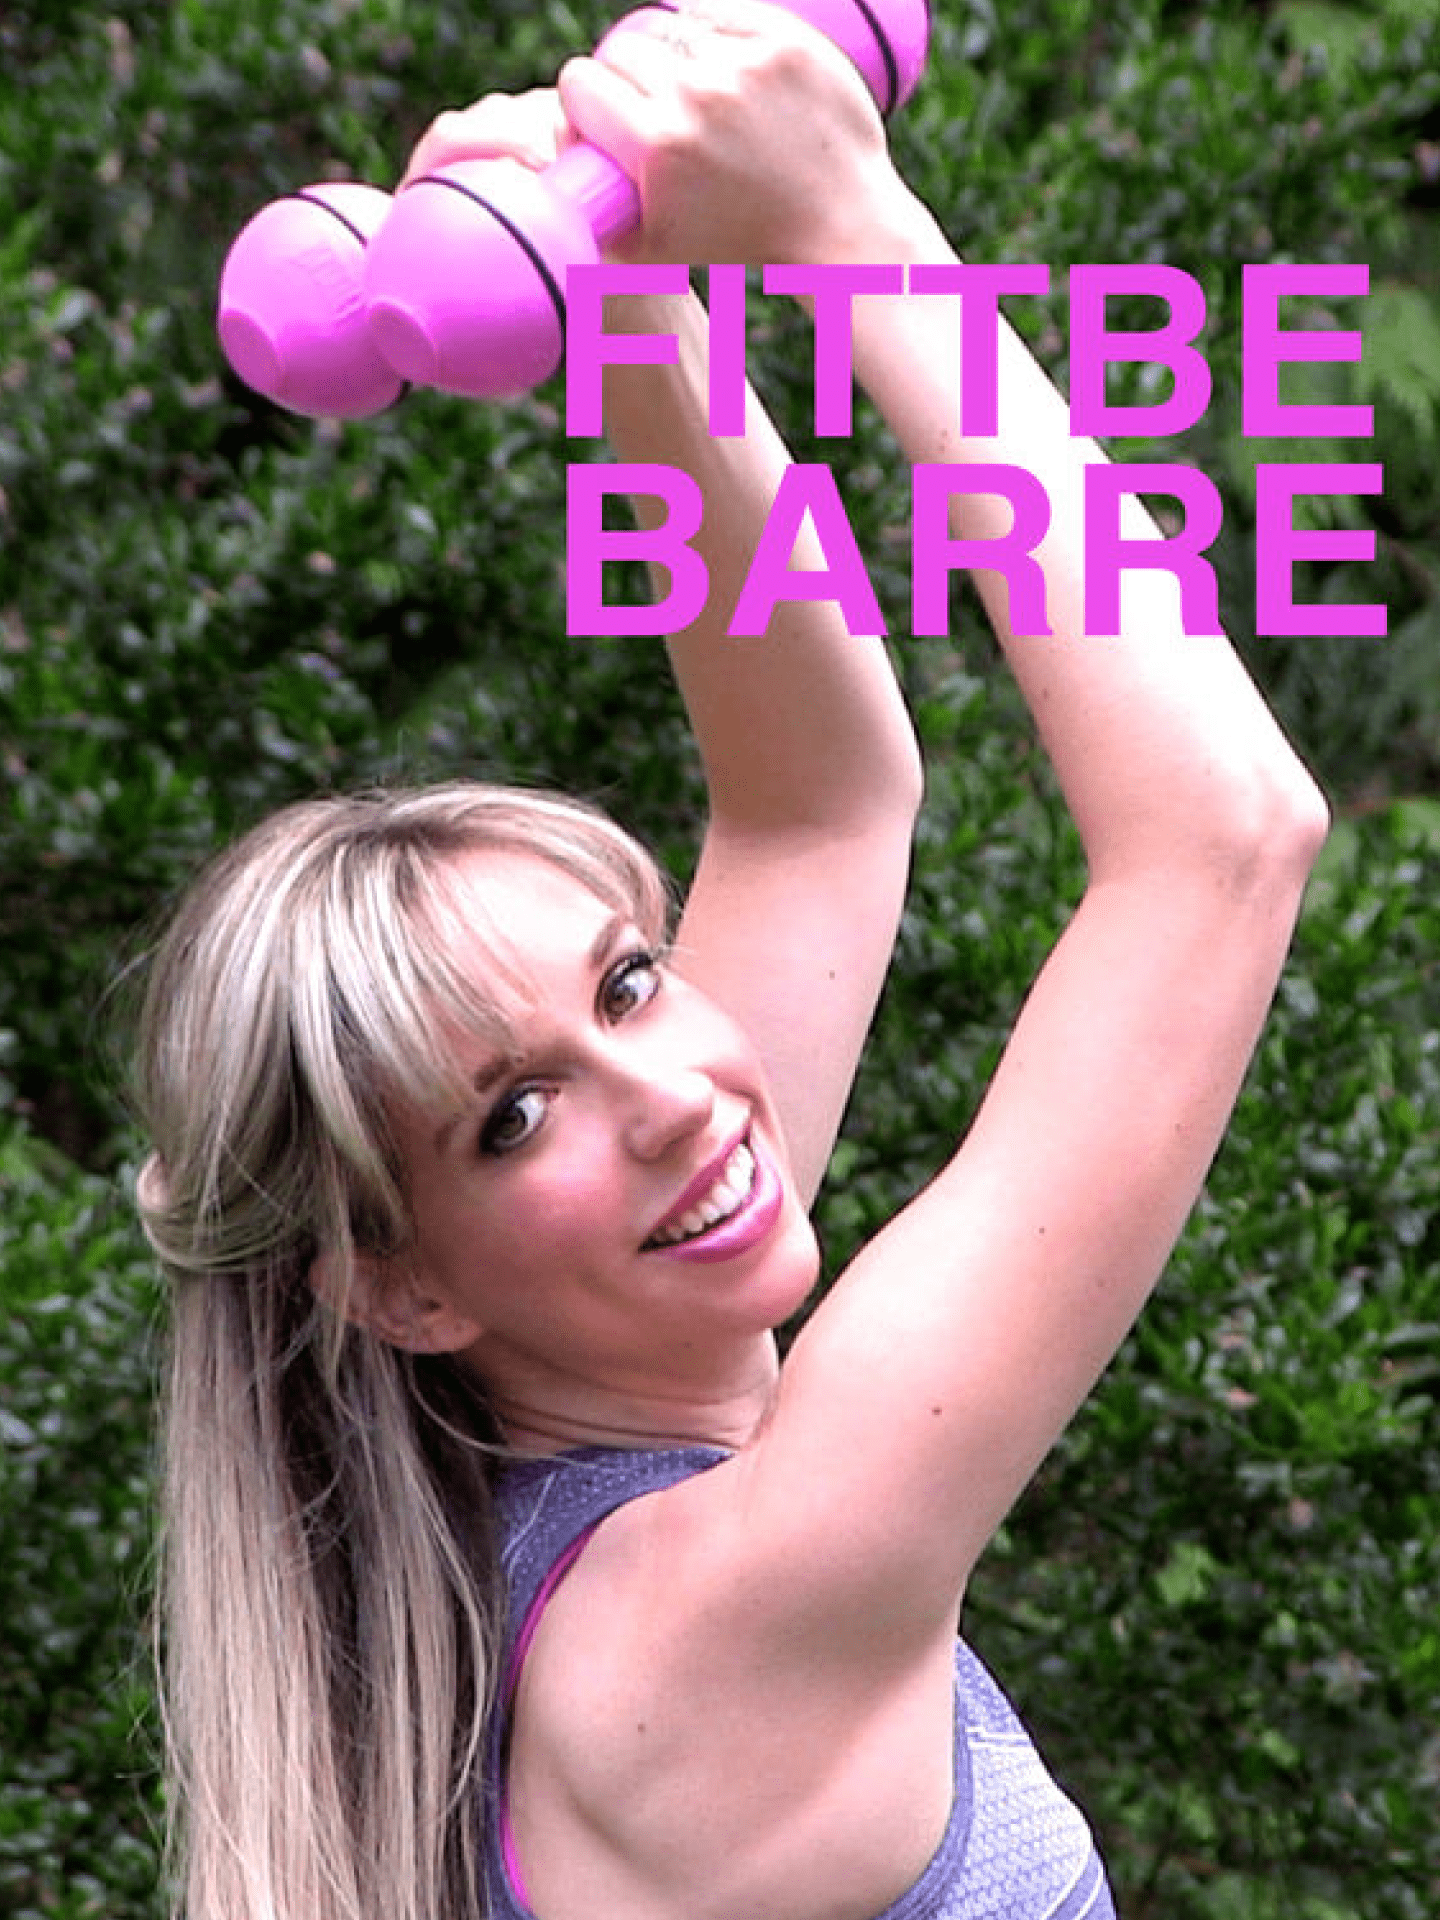 Fittbe Barre Workouts for Everyday At Home Fitness